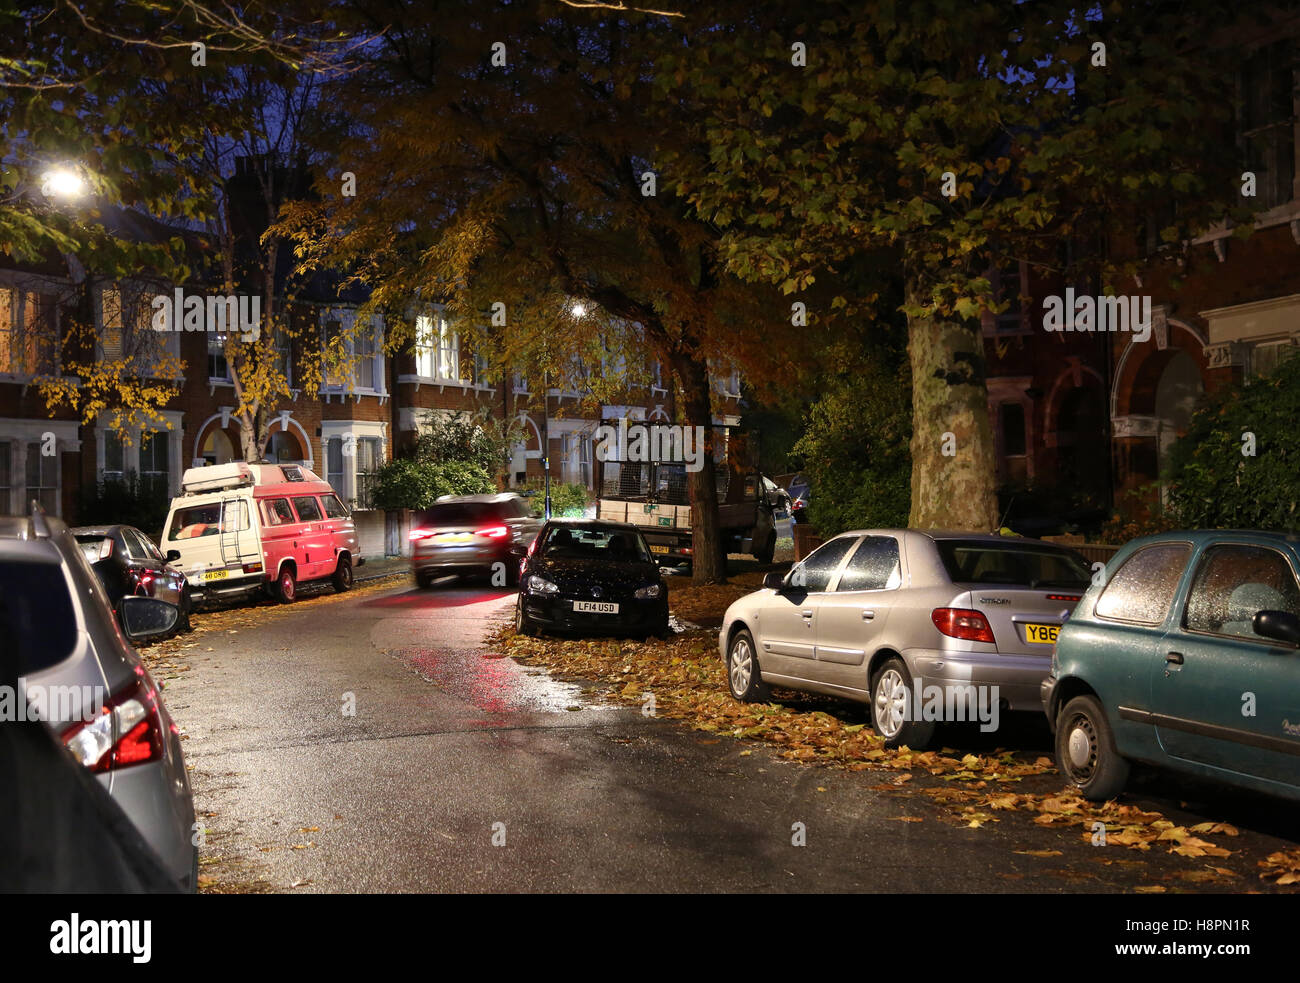 Autumn leaves cover the pavements and streets in a typical South London street after dark on a wet night - Stock Image